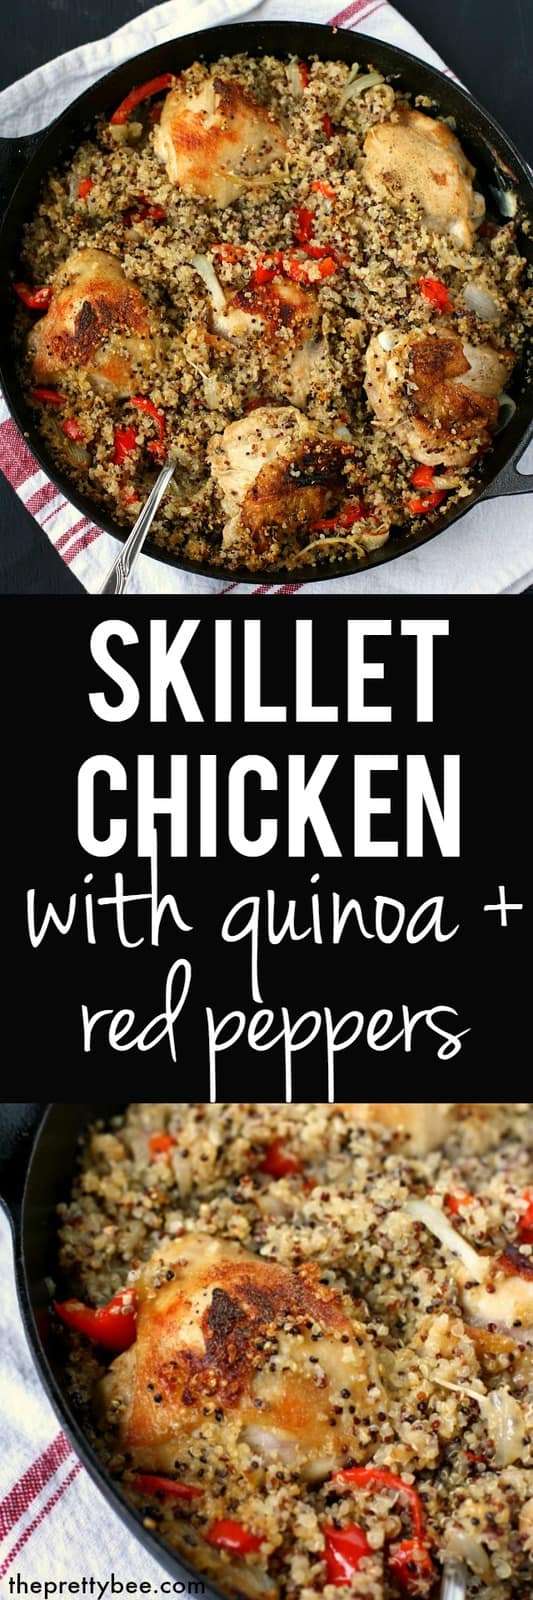 This skillet chicken with quinoa and red peppers is naturally gluten free and dairy free, and a delicious meal for Sunday dinner!